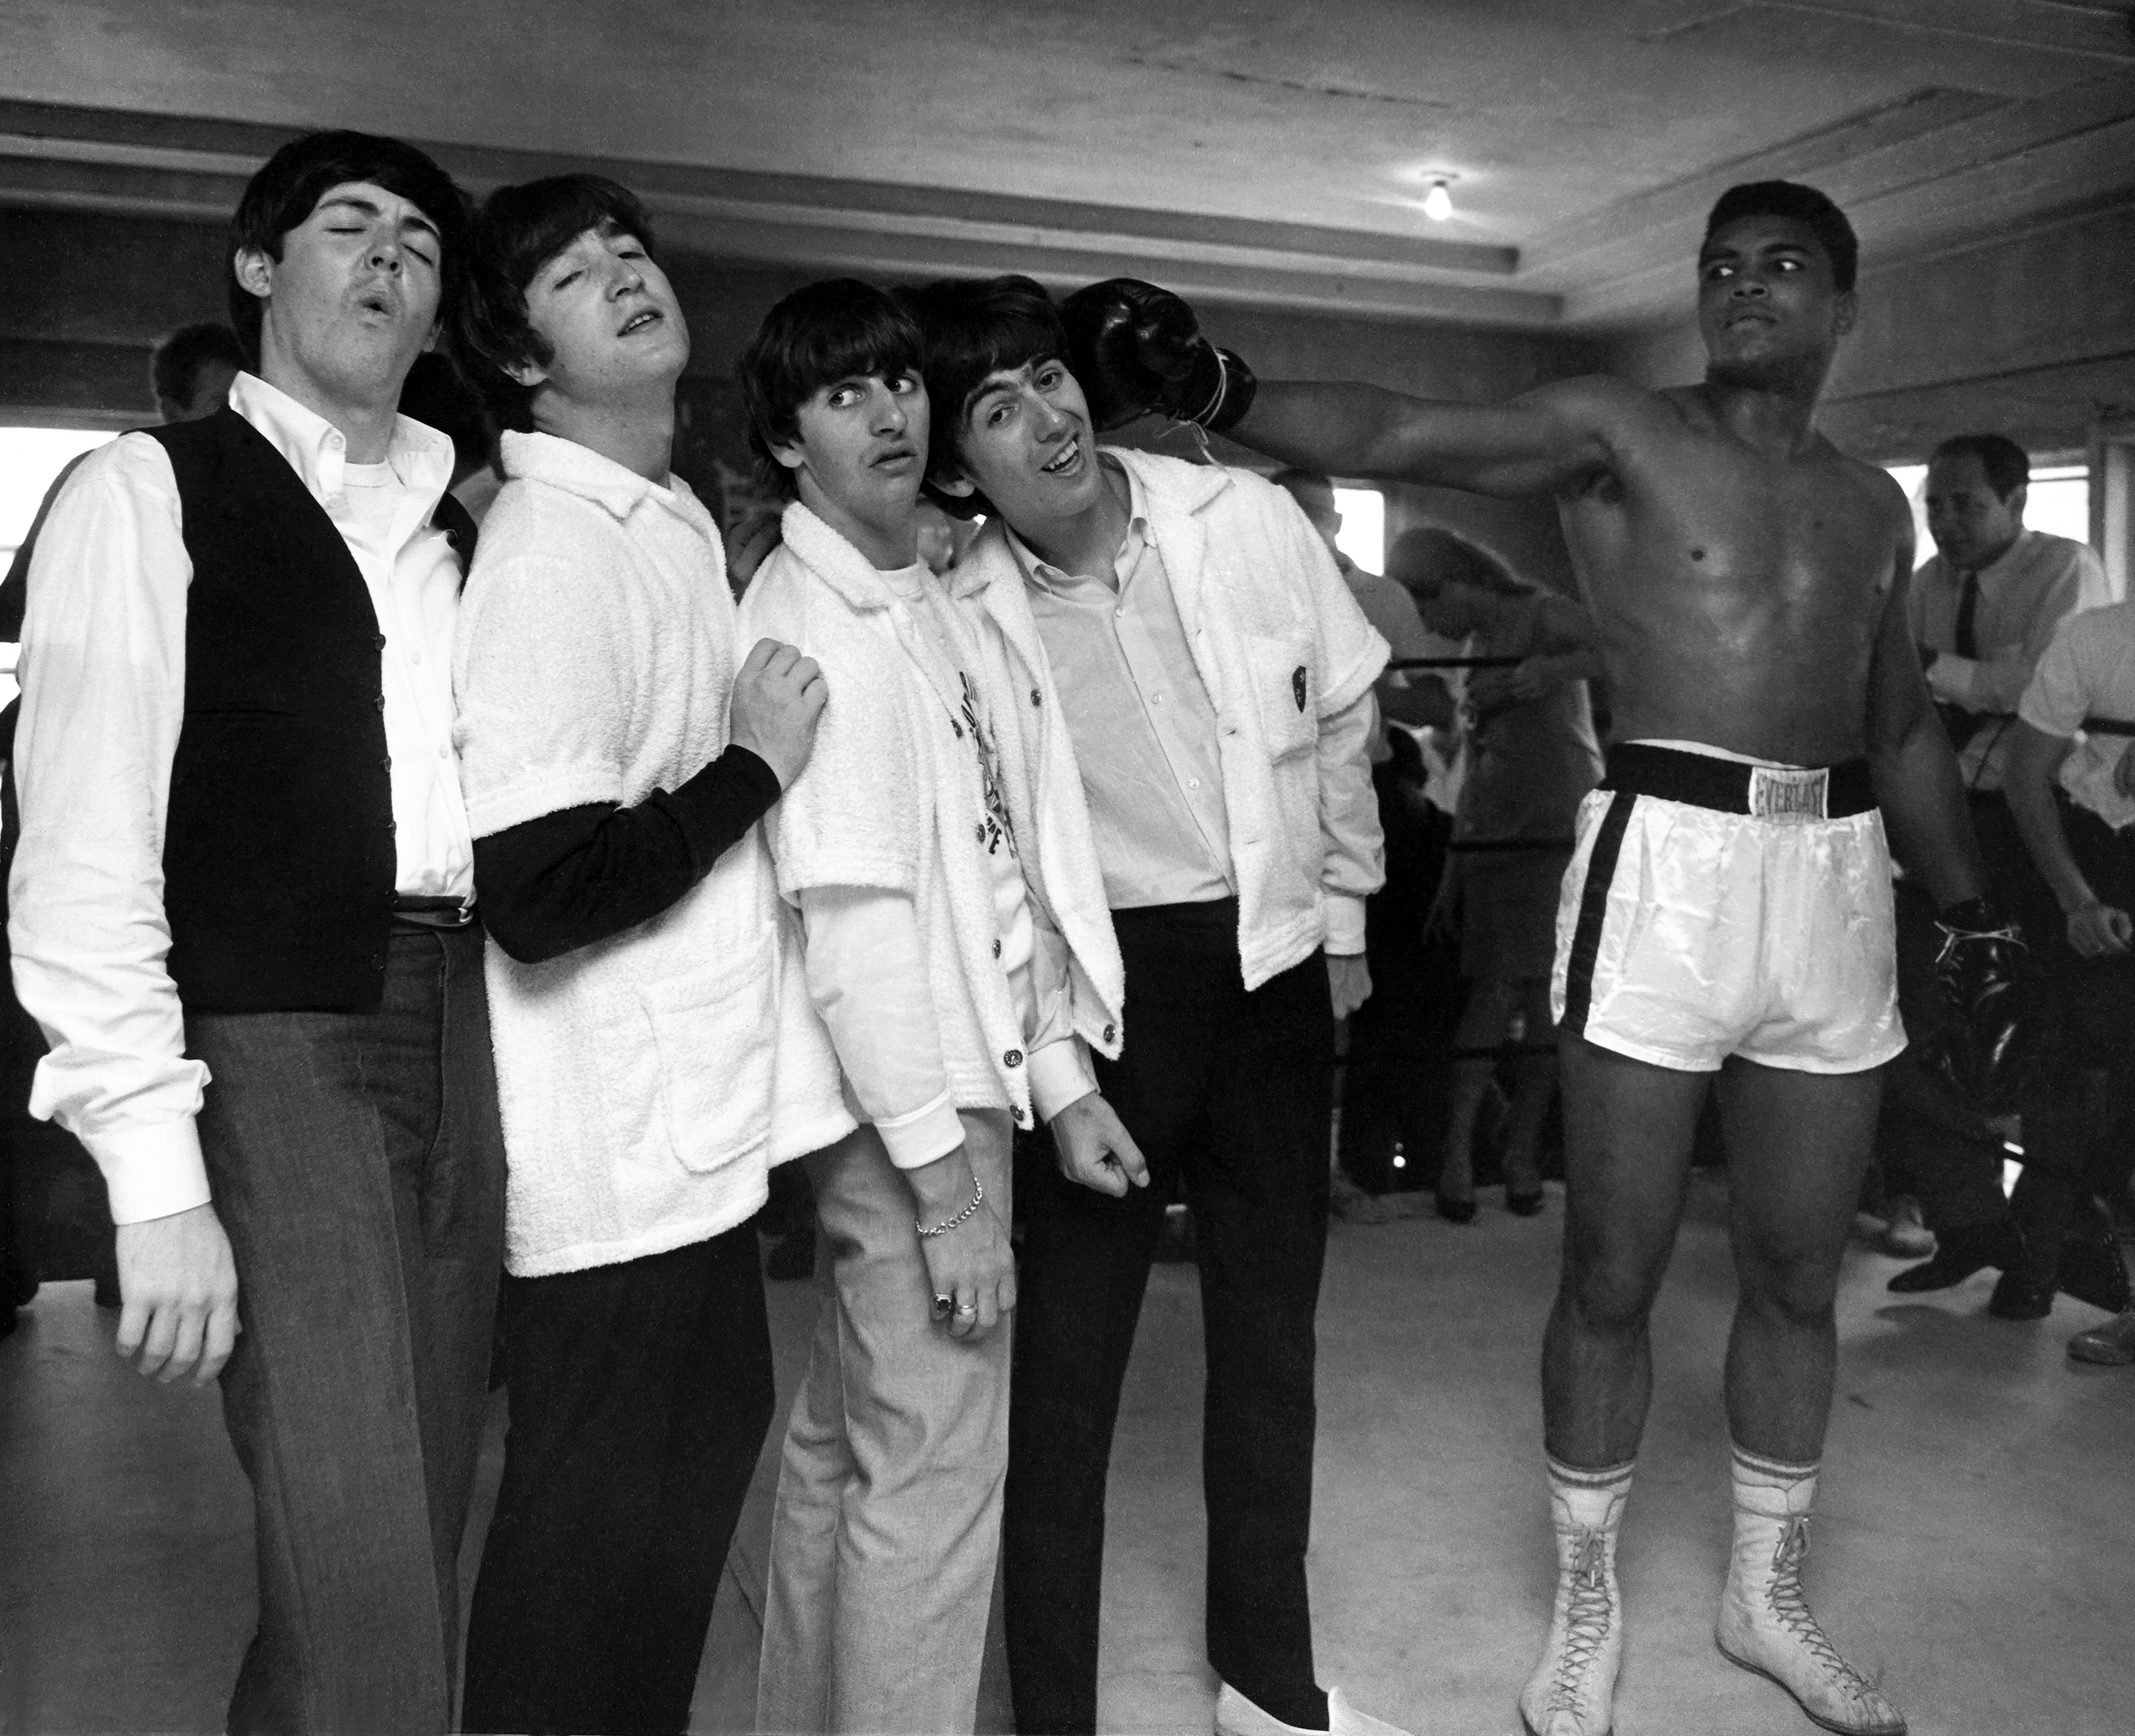 The Beatles and Muhammad Ali in HARRY BENSON: SHOOT FIRST, a Magnolia Pictures release. Photo courtesy of Magnolia Pictures. Photo Credit: © Harry Benson.